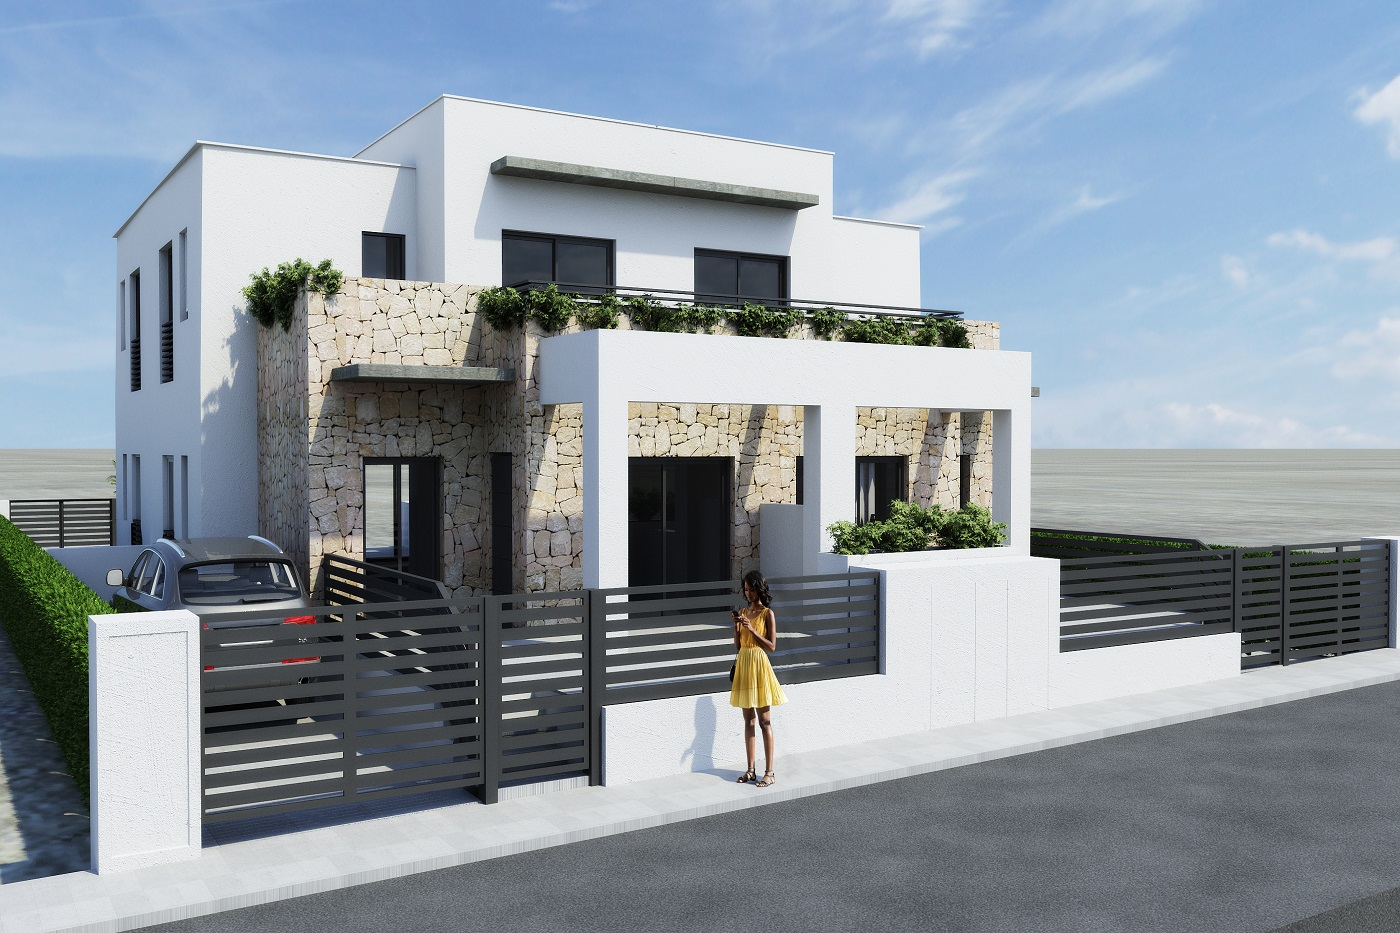 Superb new build complex for sale in a gated residential complex in Aguas Nuevas, Torrevieja.